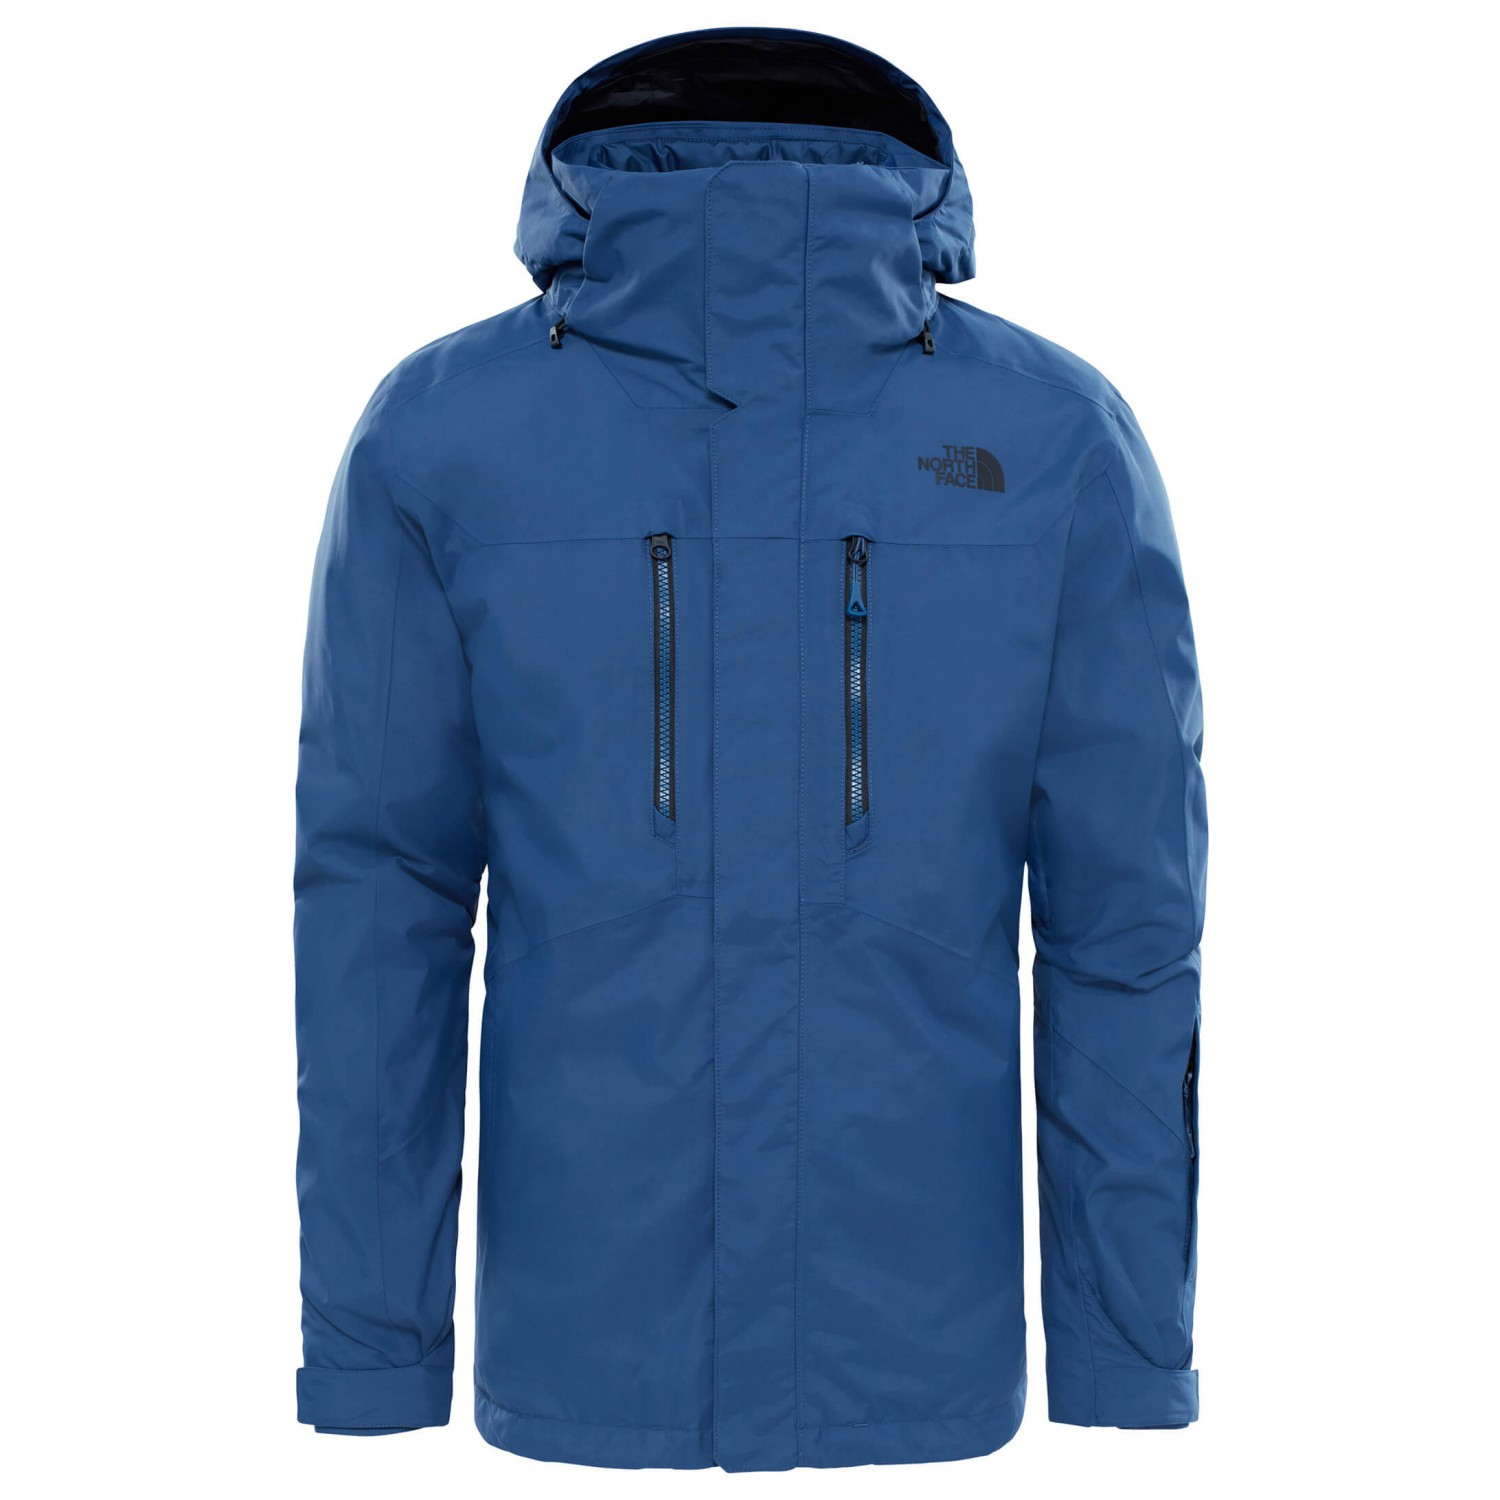 Clement Giacca sci Jacket Triclimate North Face Uomo da The fUwxqU